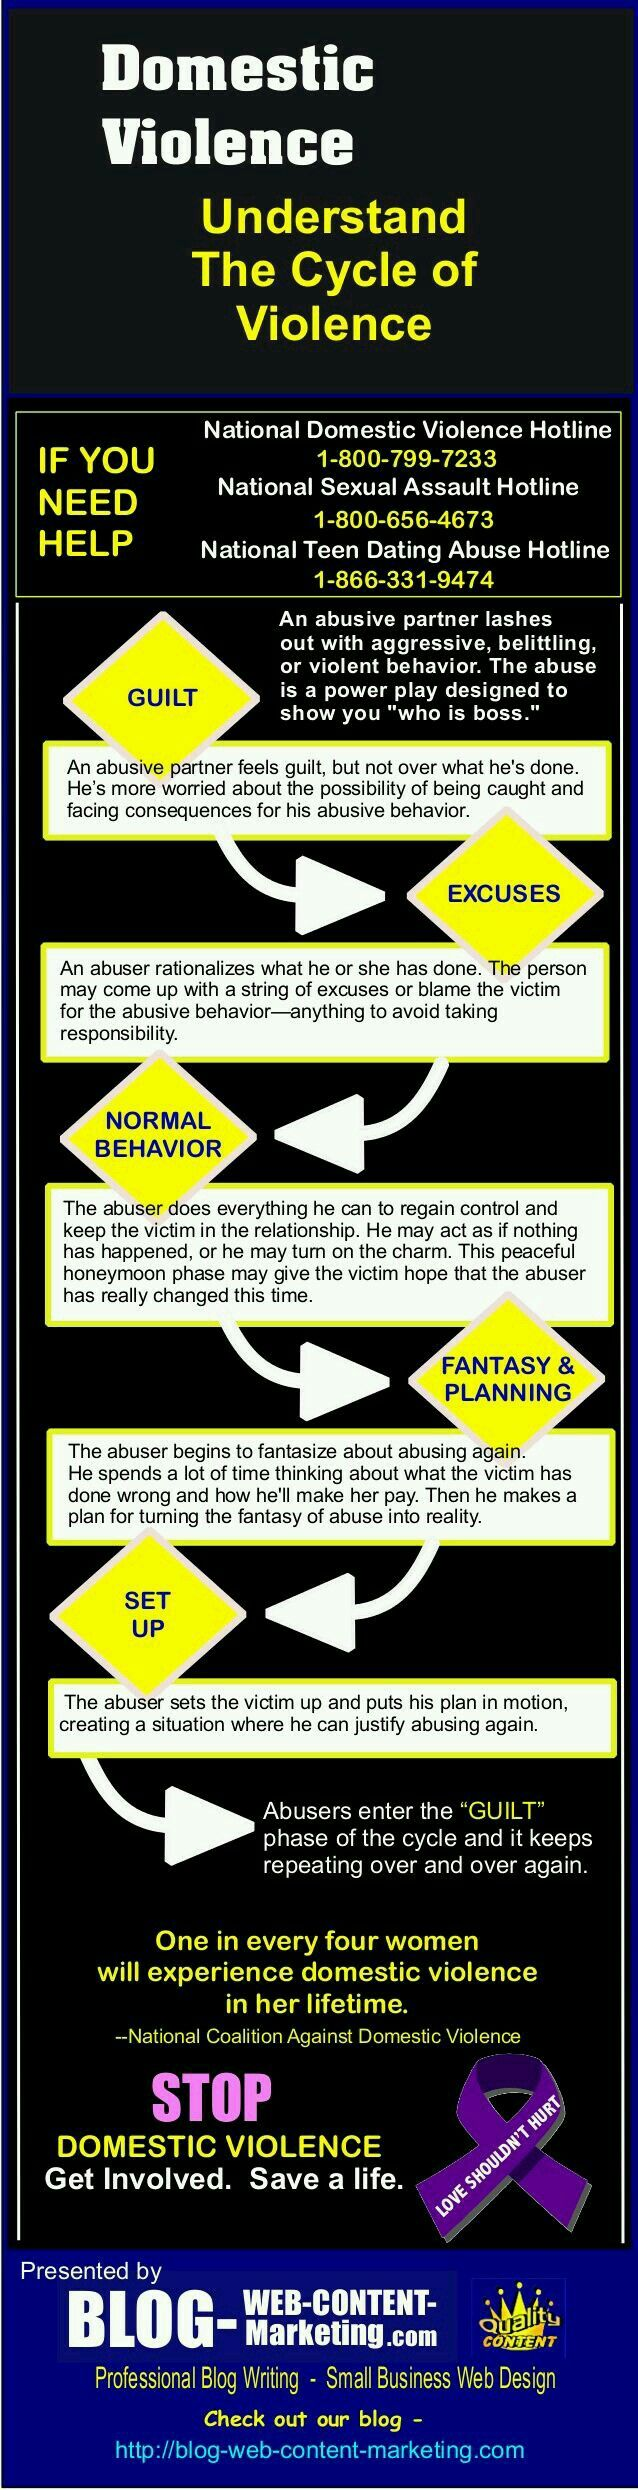 best domestic violence awareness images  psychology infographic and charts domestic violence understand the cycle of violence by ken bradford via slidesha infographic description domestic